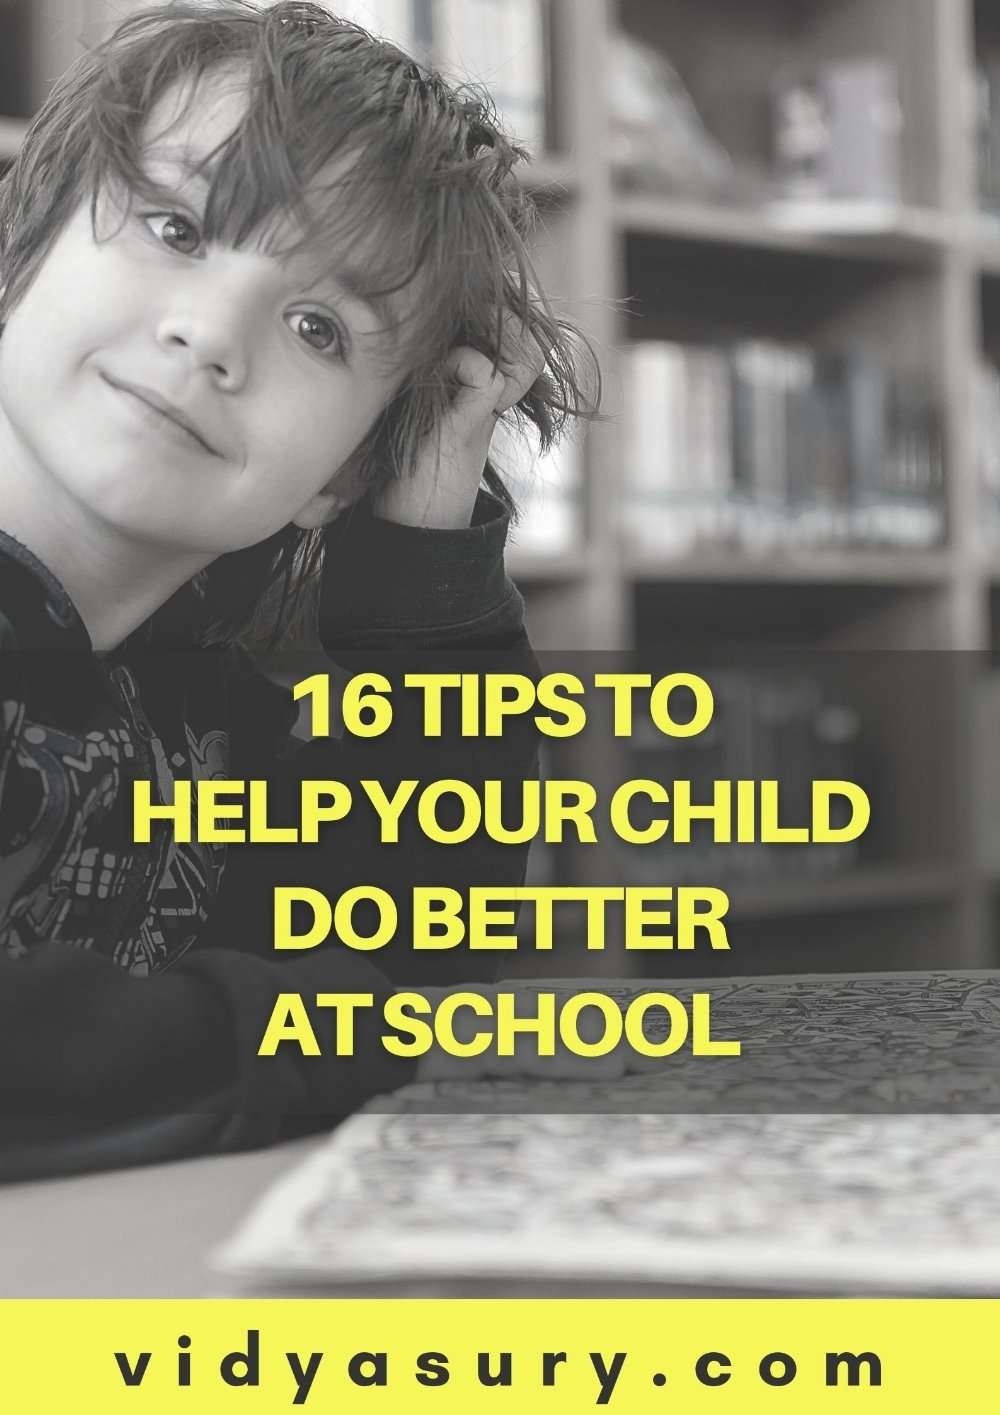 16 tips to help your child succeed at school